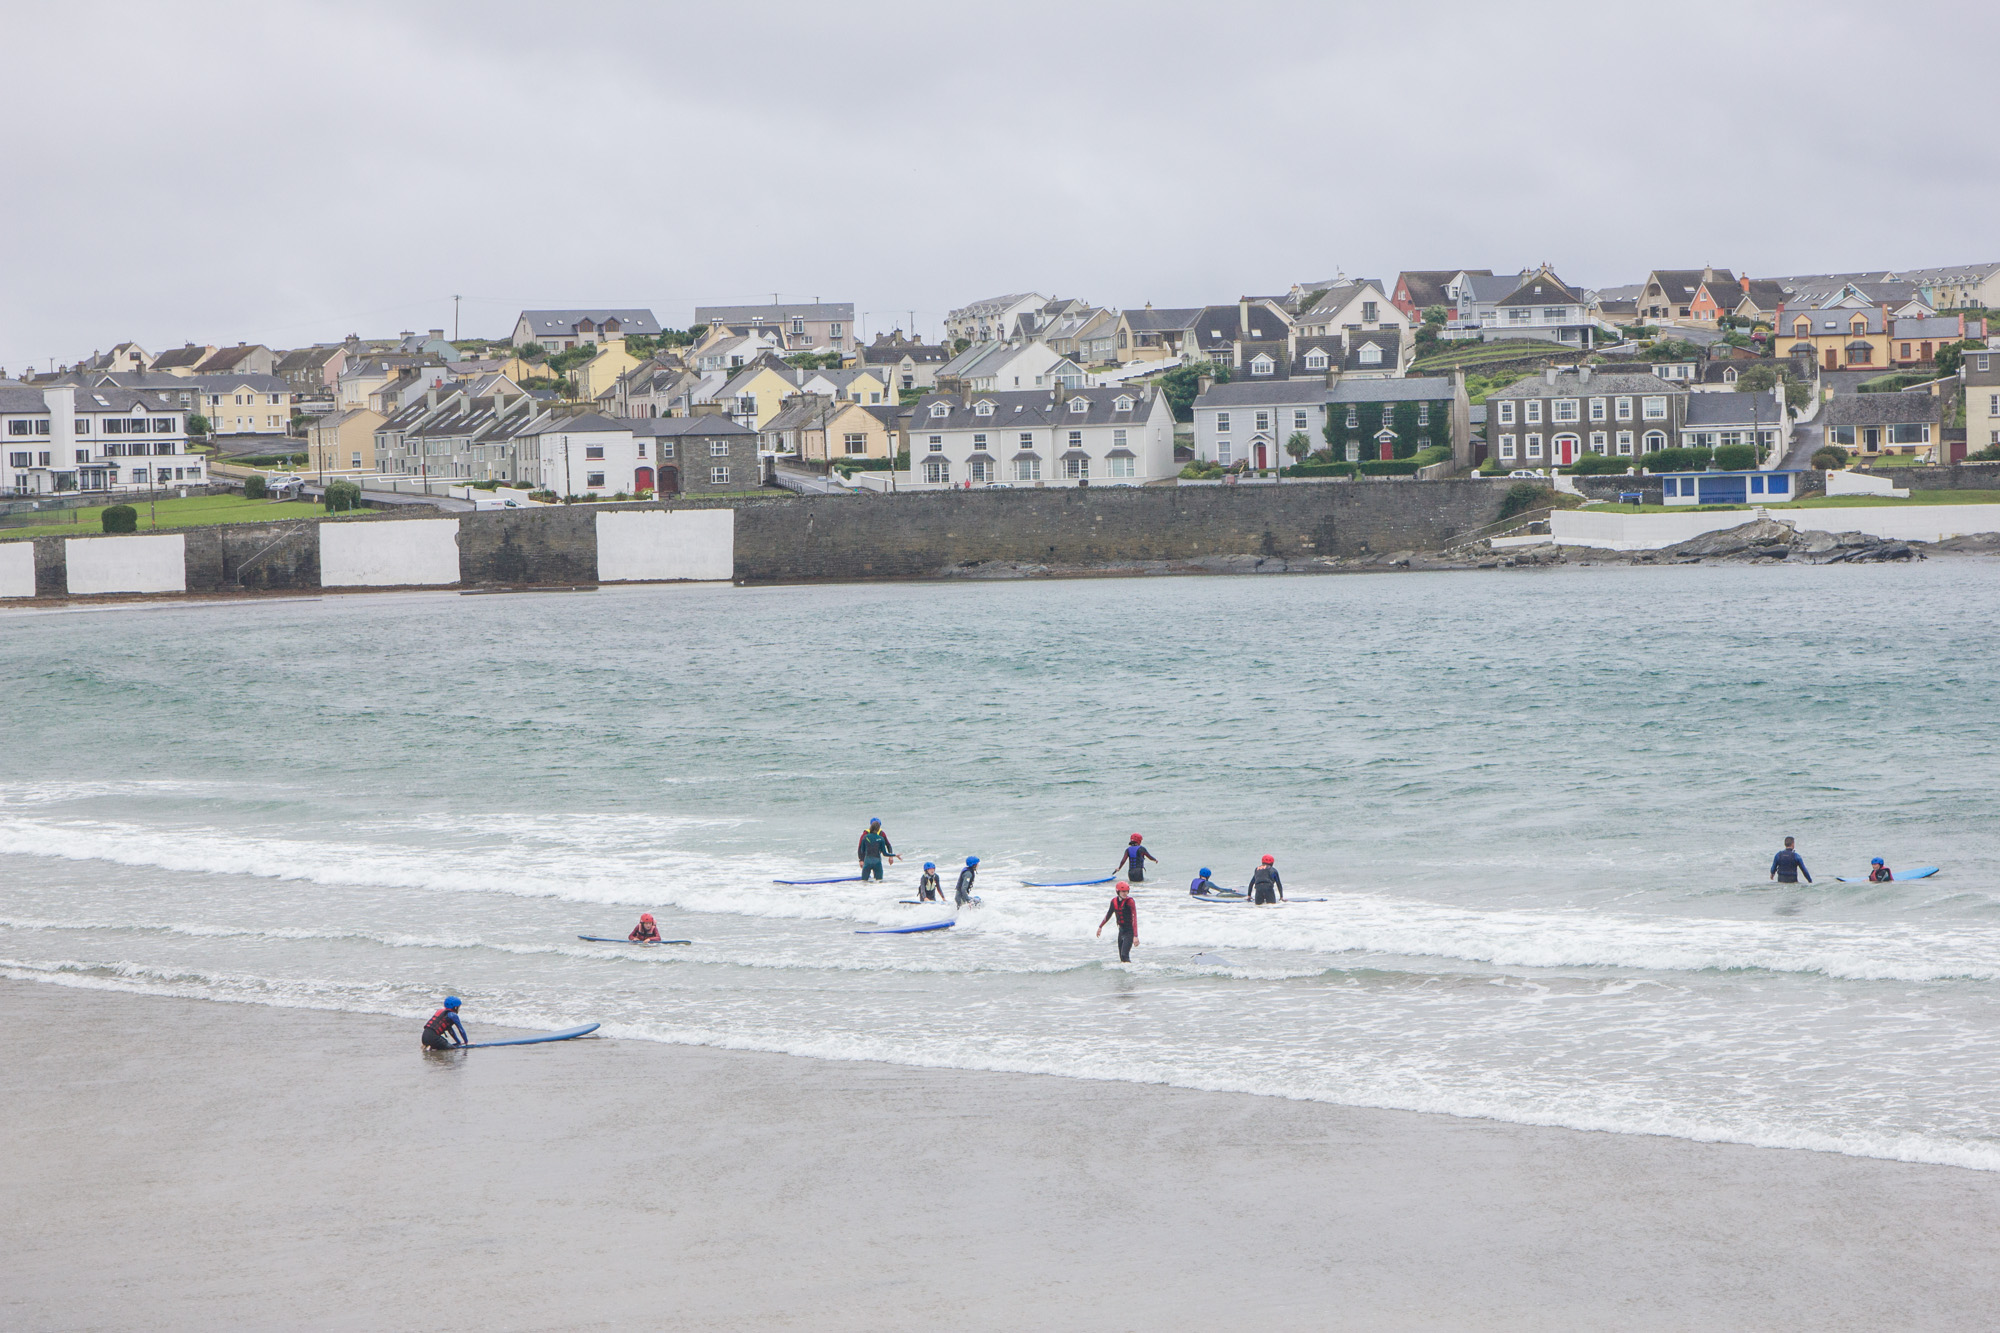 Beach in Kilkee, Ireland full of surfers with a view of the town behind it